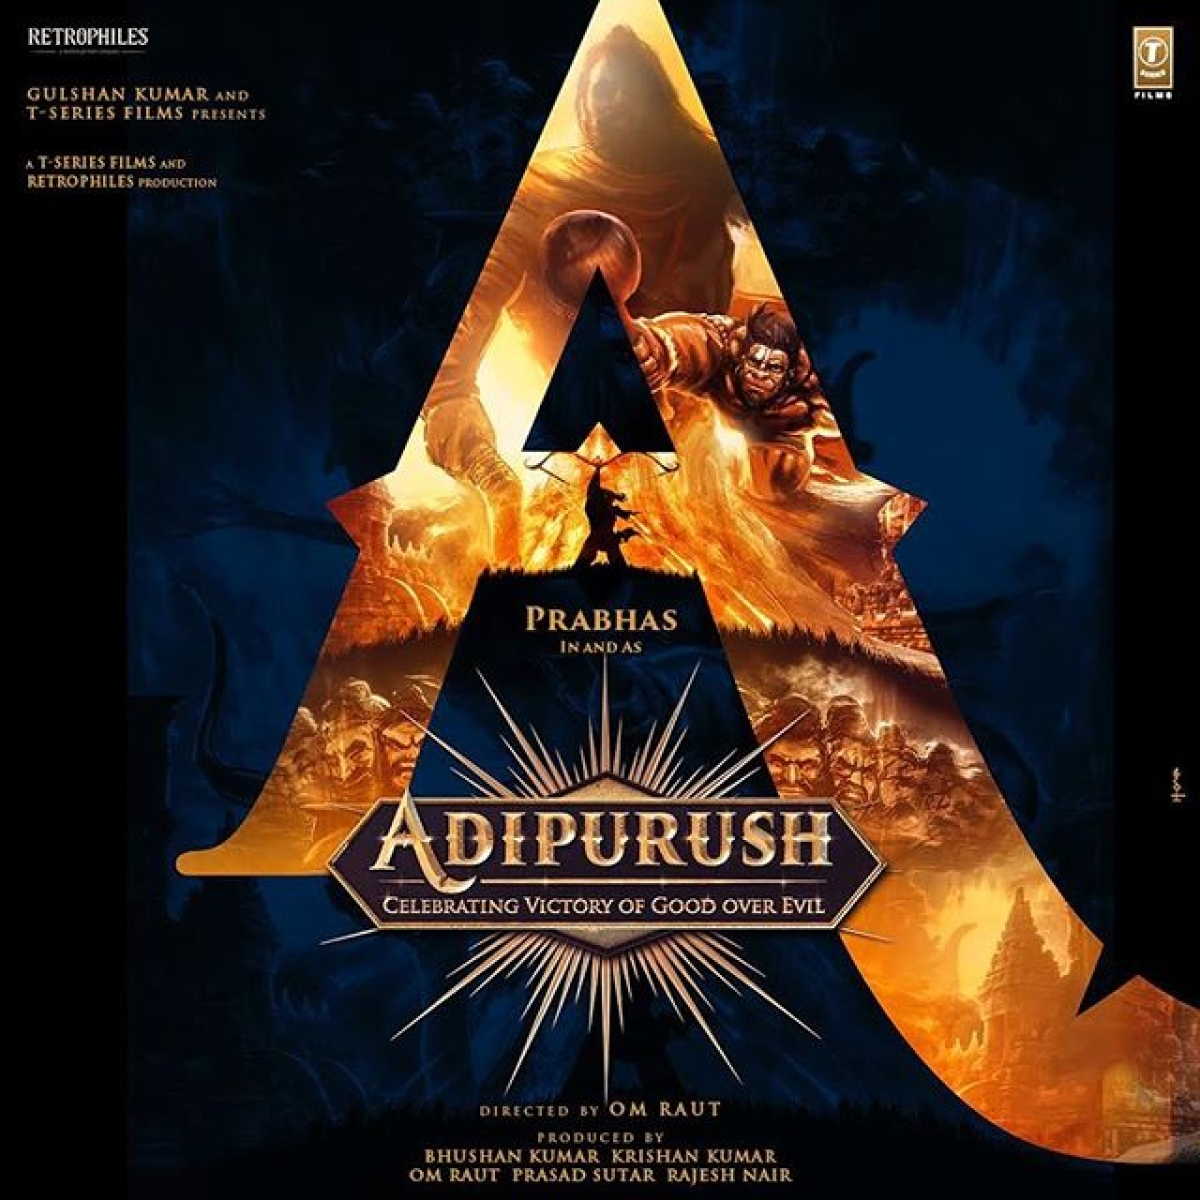 Adipurush: Om Raut says Prabhas is perfect for the role of Lord Ram